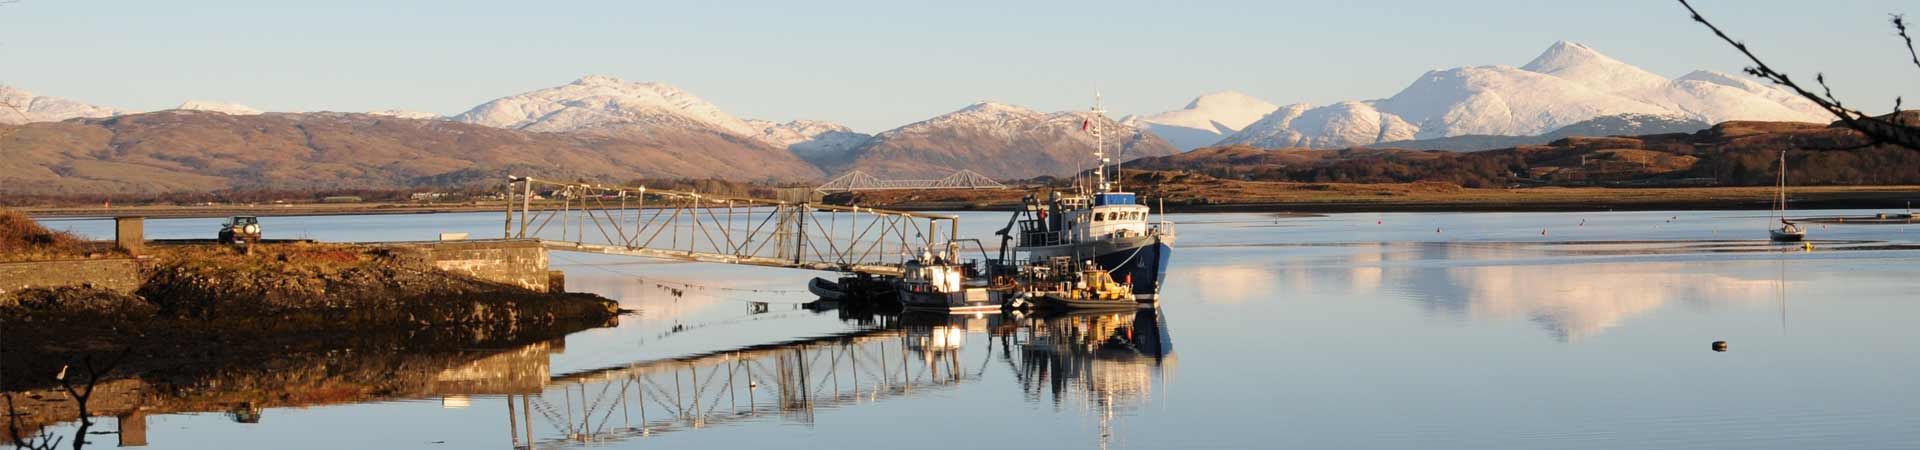 Research vessels moored on SAMS pontoon with crisp mountains in background